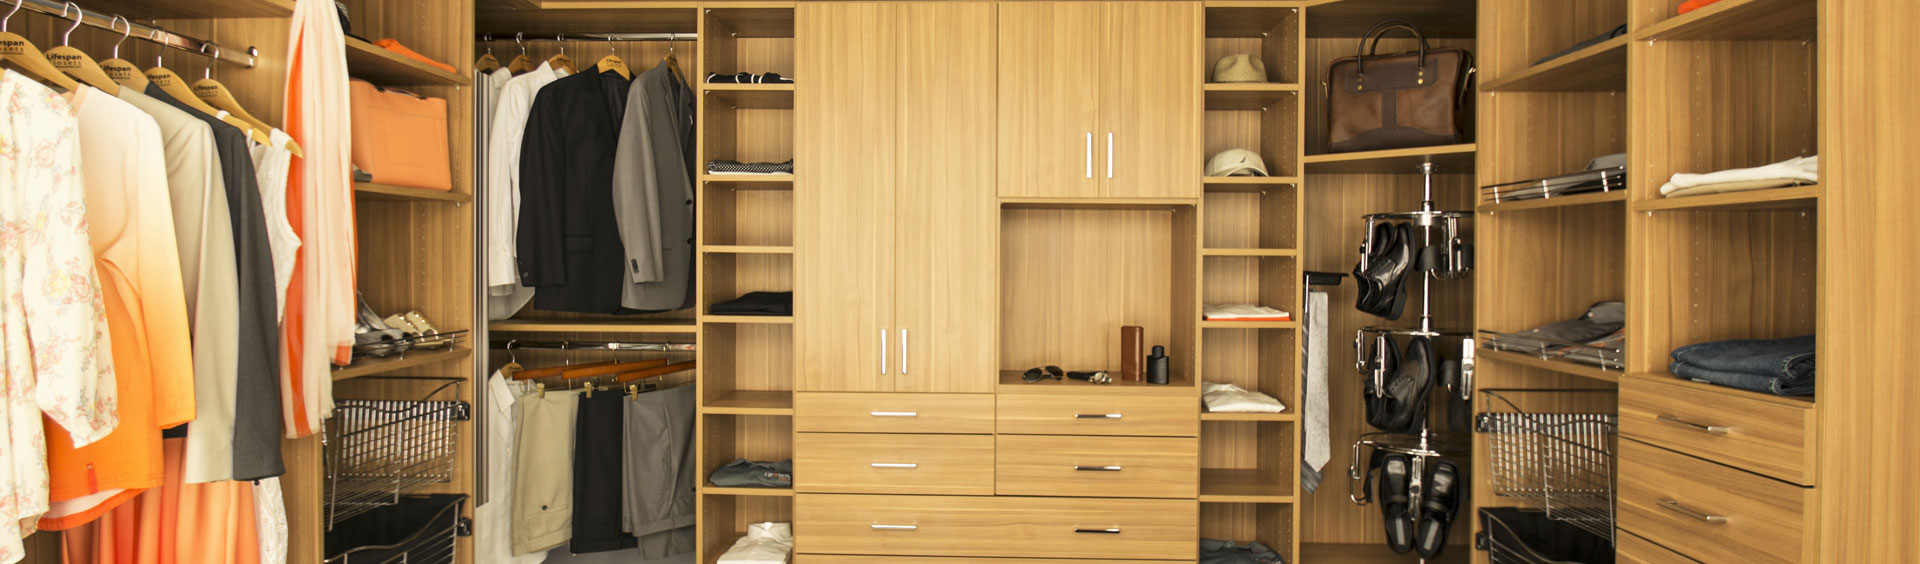 Best Custom Closets NJ | Lifespan Closets Building Supplies